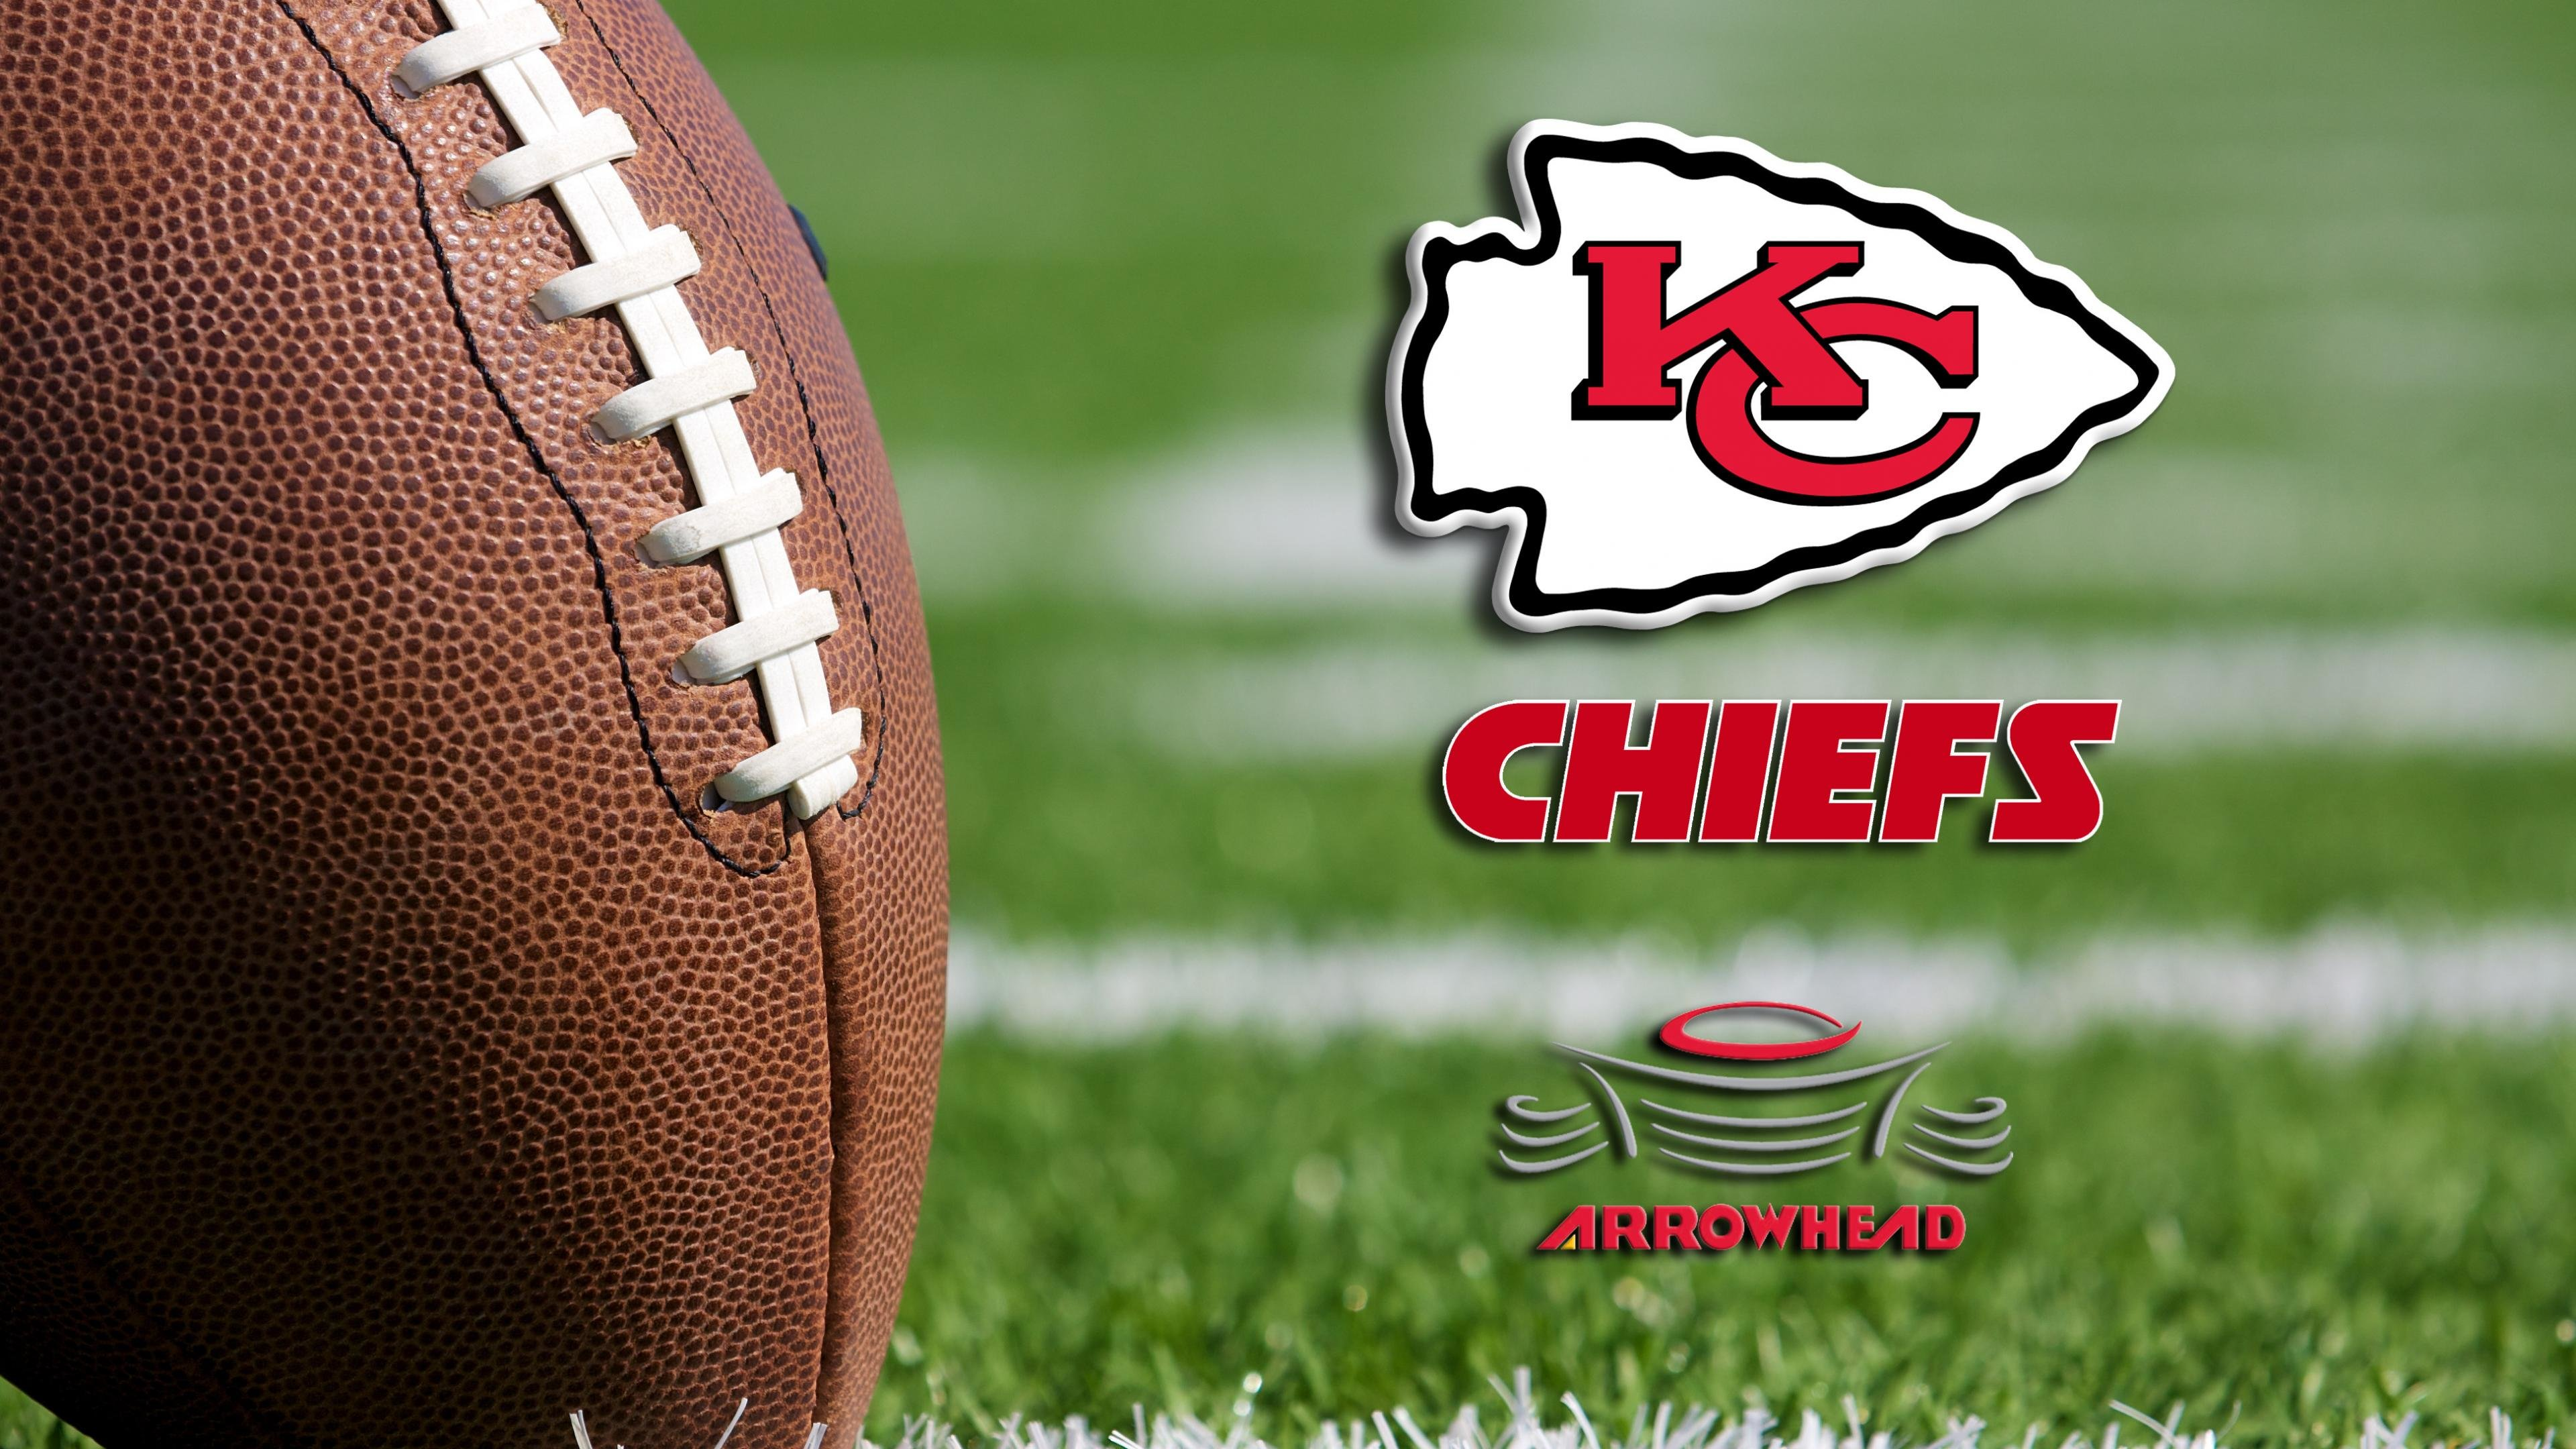 Free Download Kansas City Chiefs Wallpaper ID174336 Ultra Hd 4k For Computer